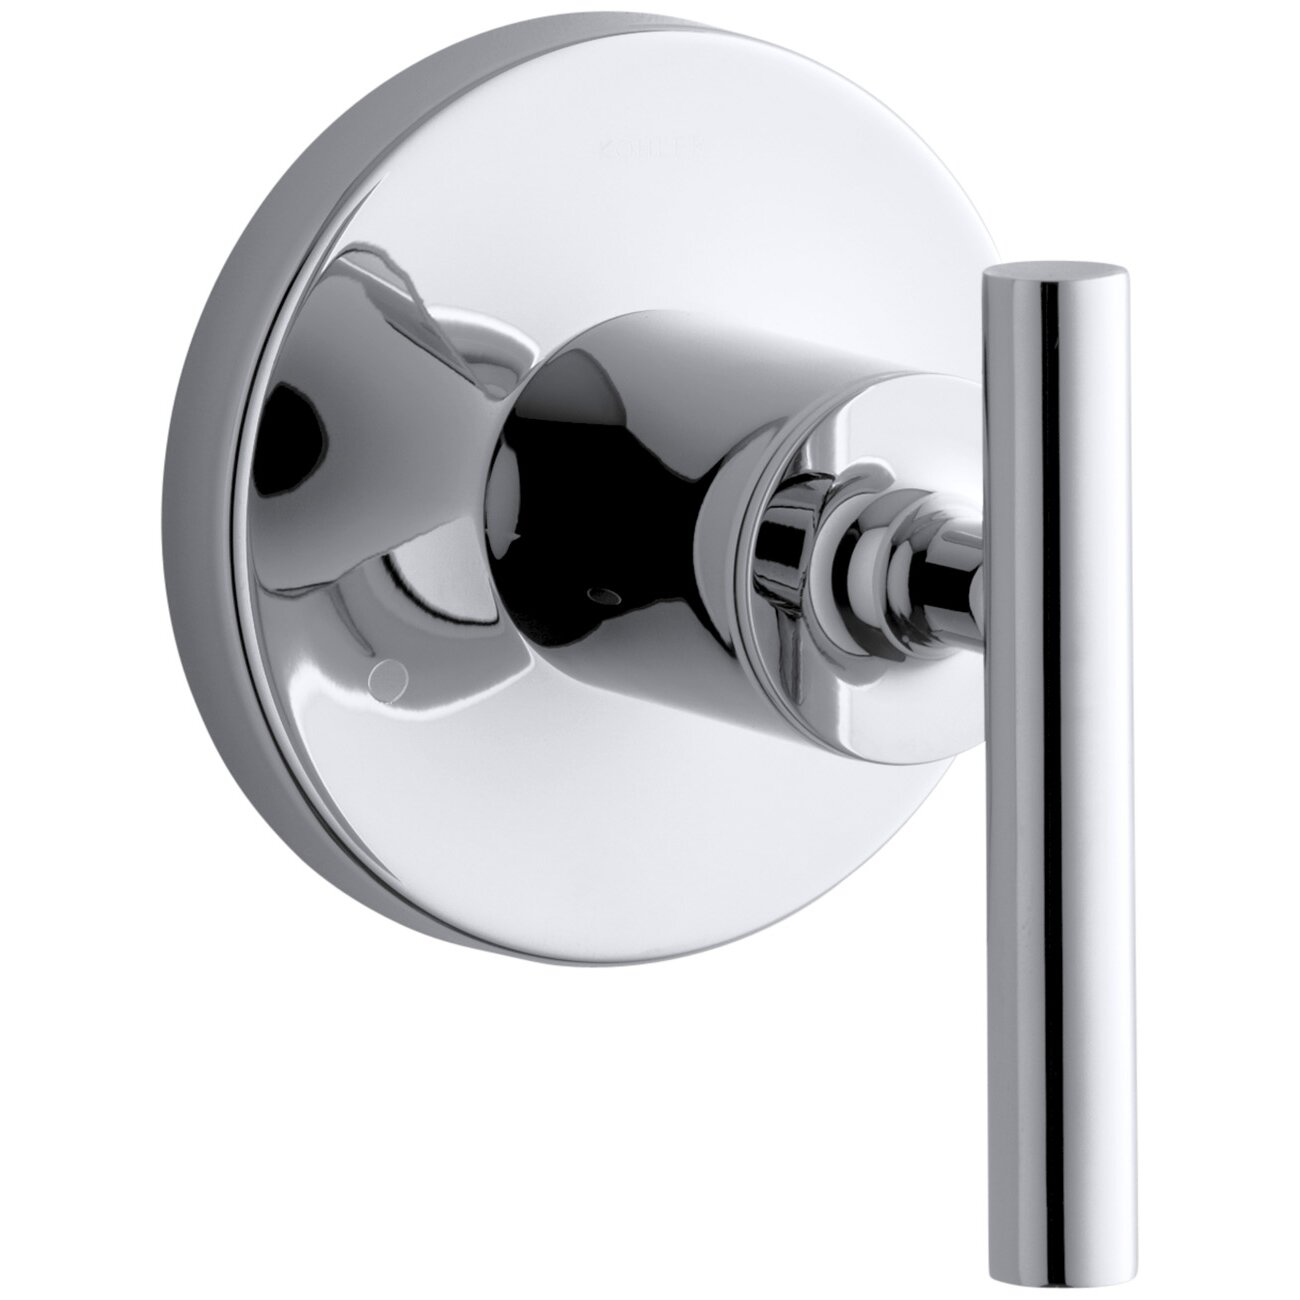 Kohler Diverter Handle for Purist Rite-Temp Pressure-Balancing ... - Kohler Diverter Handle for Purist Rite-Temp Pressure-Balancing Shower Faucet